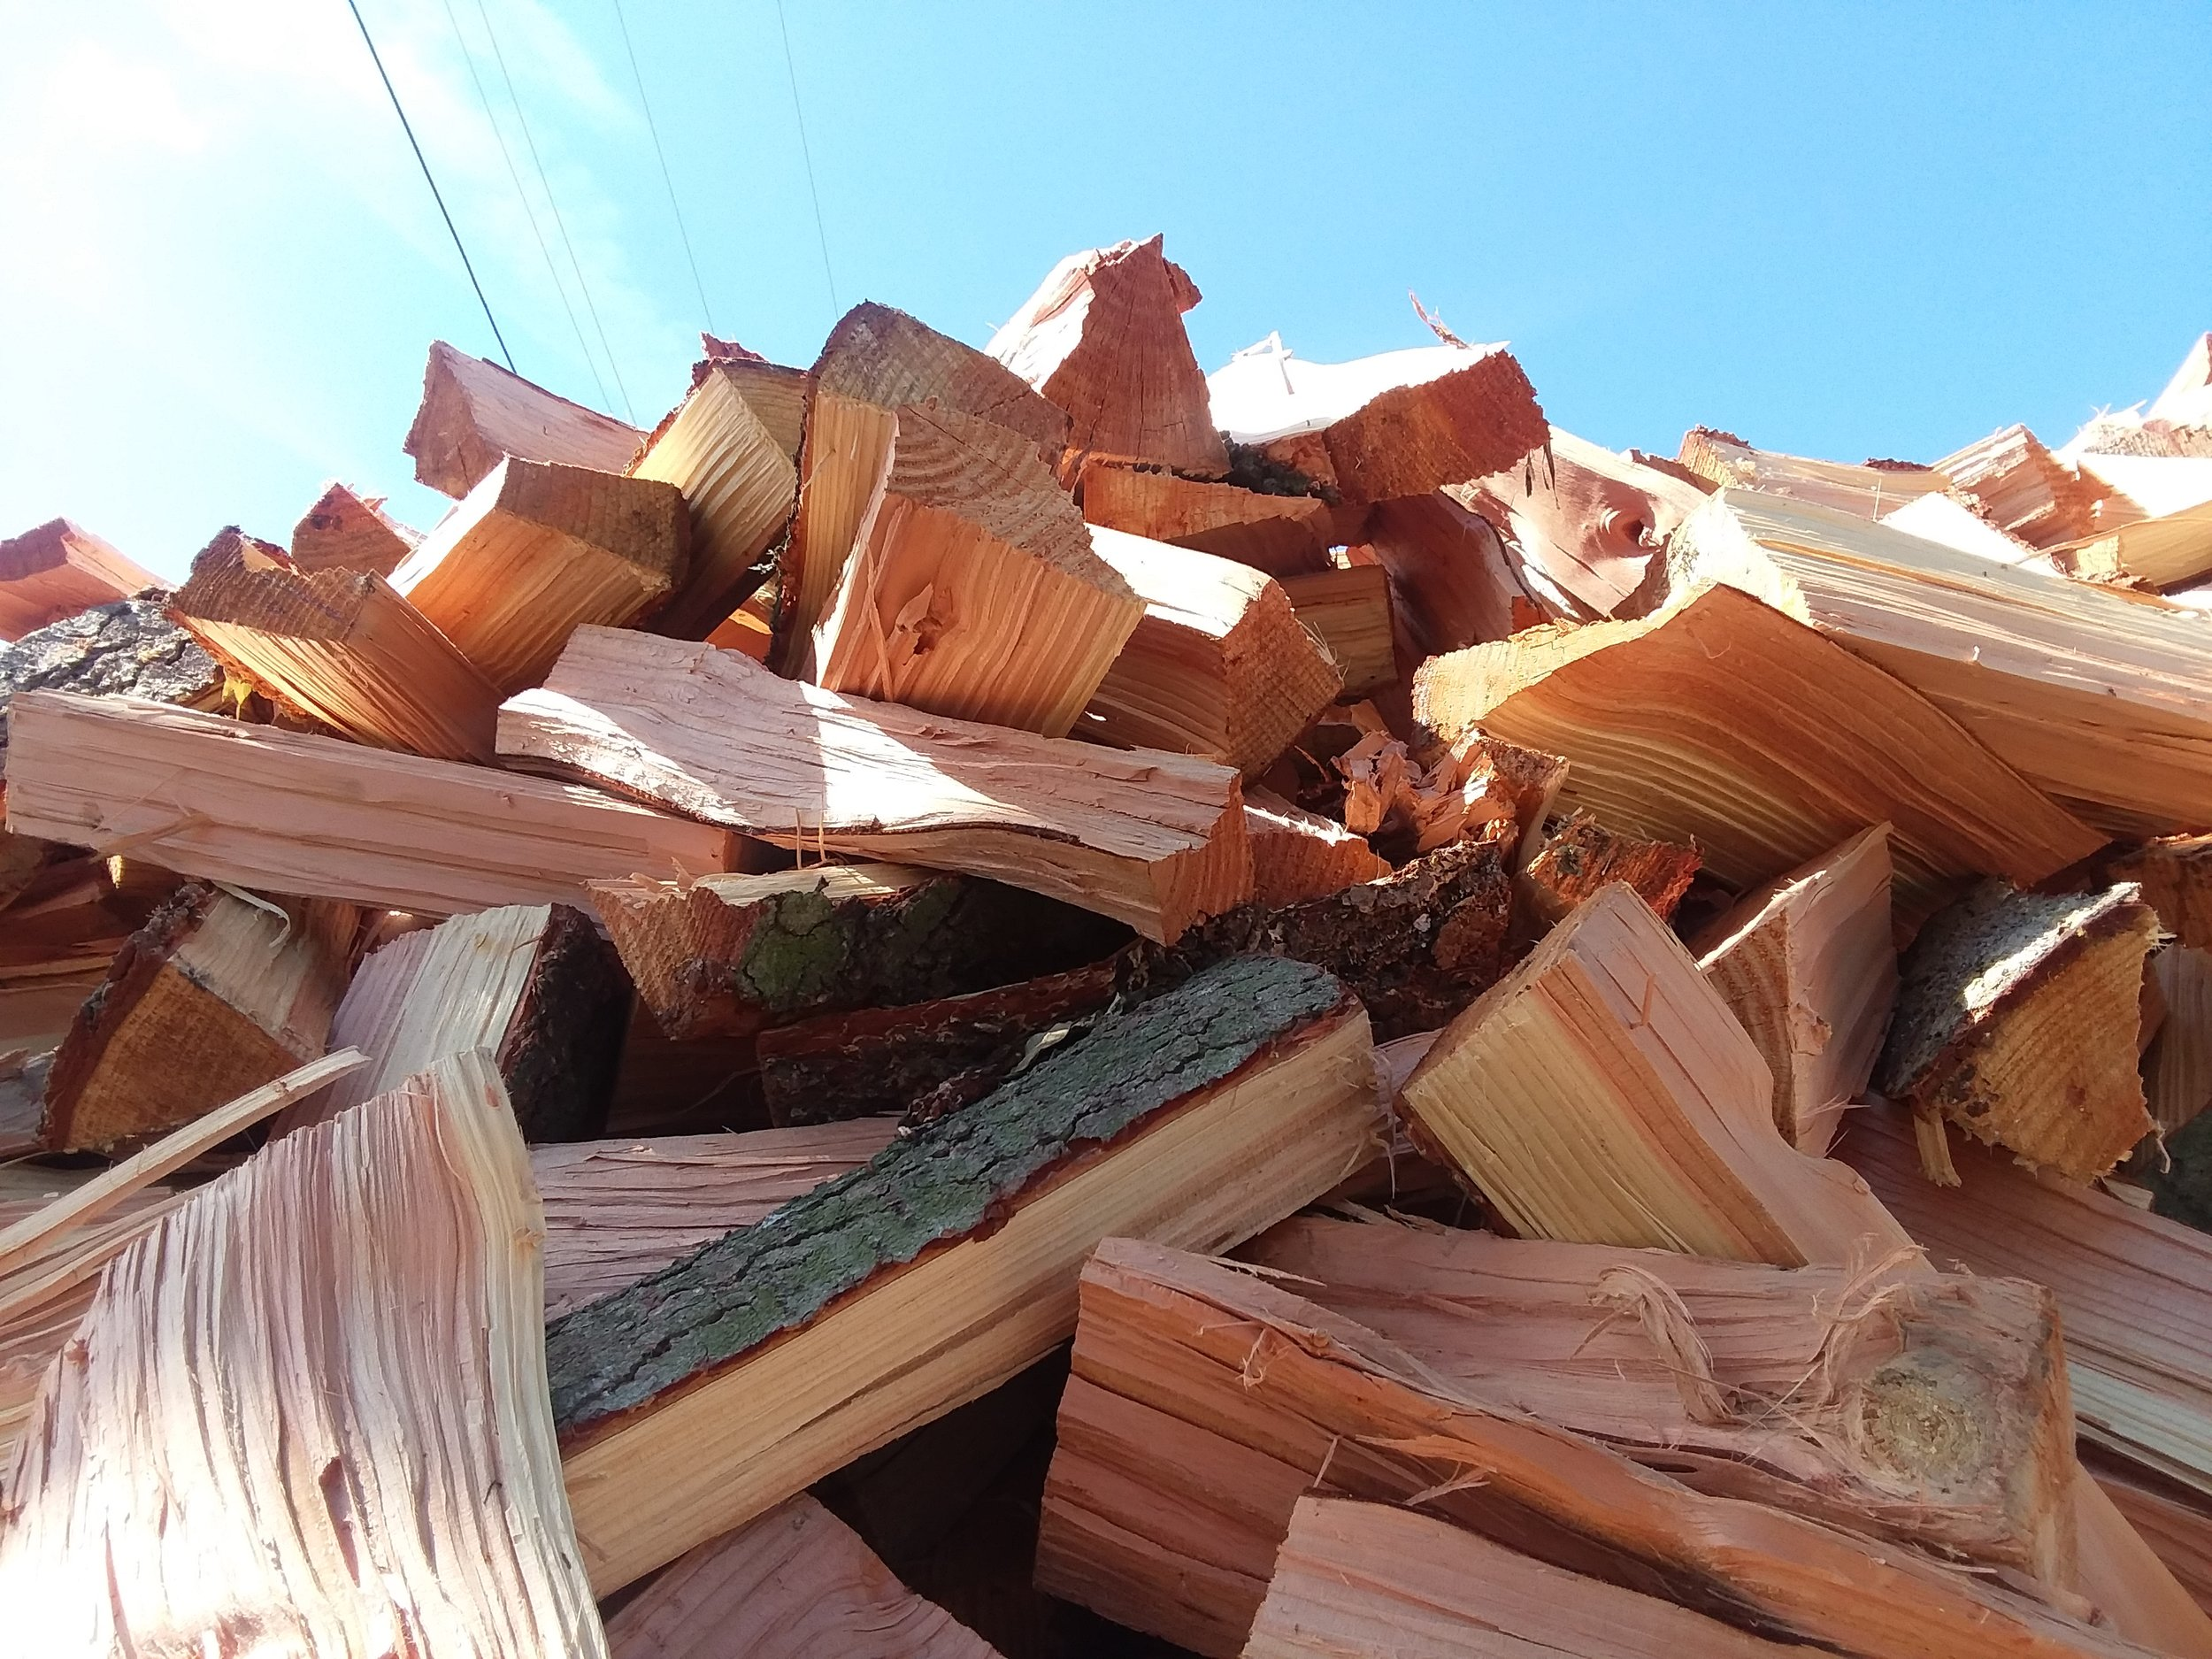 Need Firewood? - Firewood in volumes from single Campfire Bundles to multiple cords delivered and stacked, we've got you covered.